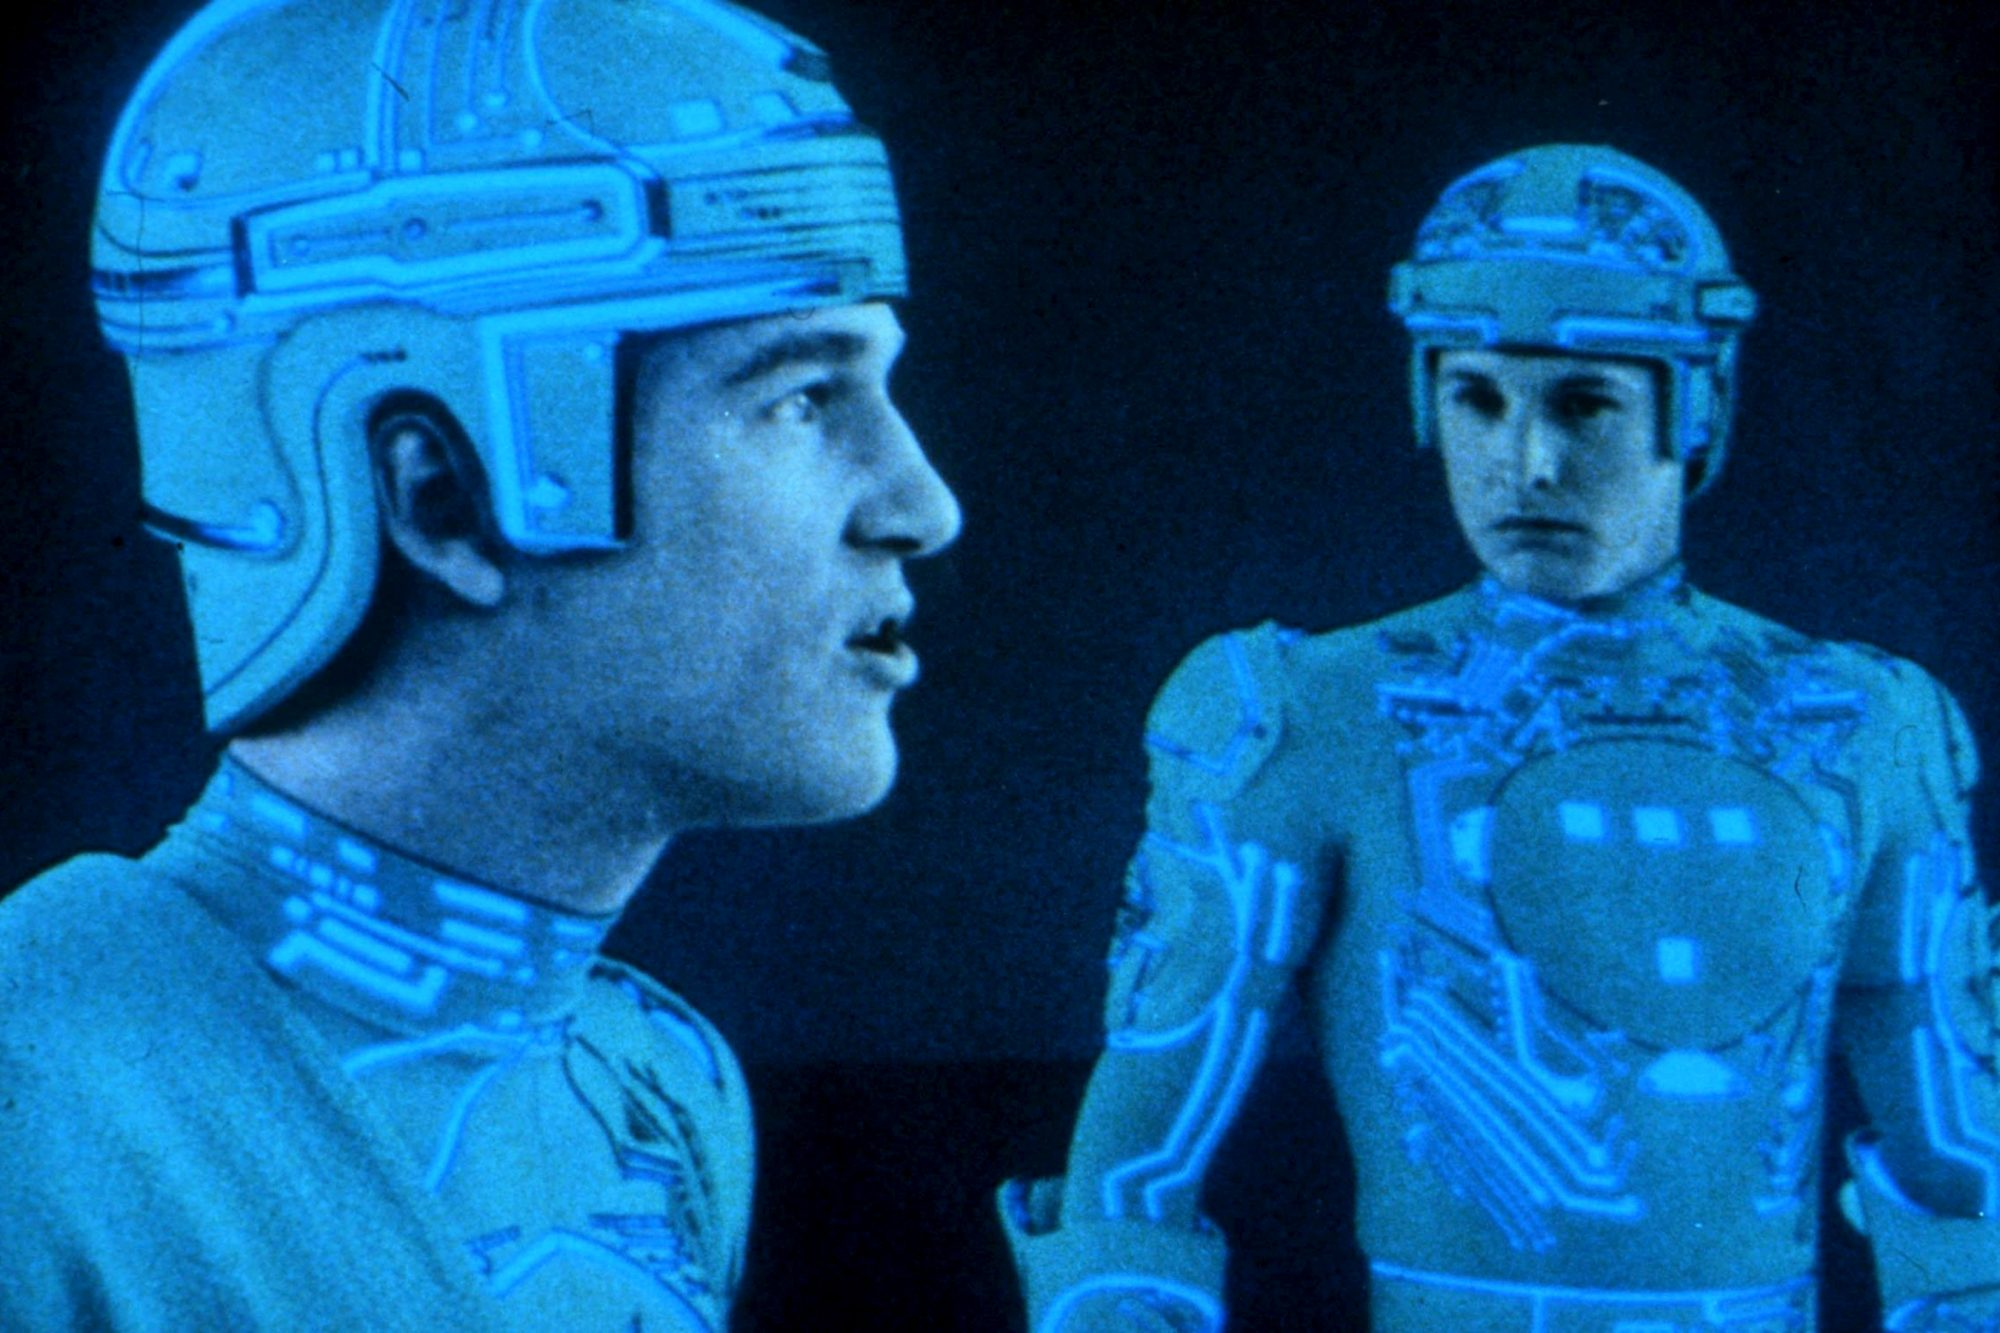 TRON (US/TAIWAN 1982) YOU MUST CREDIT: WALT DISNEY PICTURES